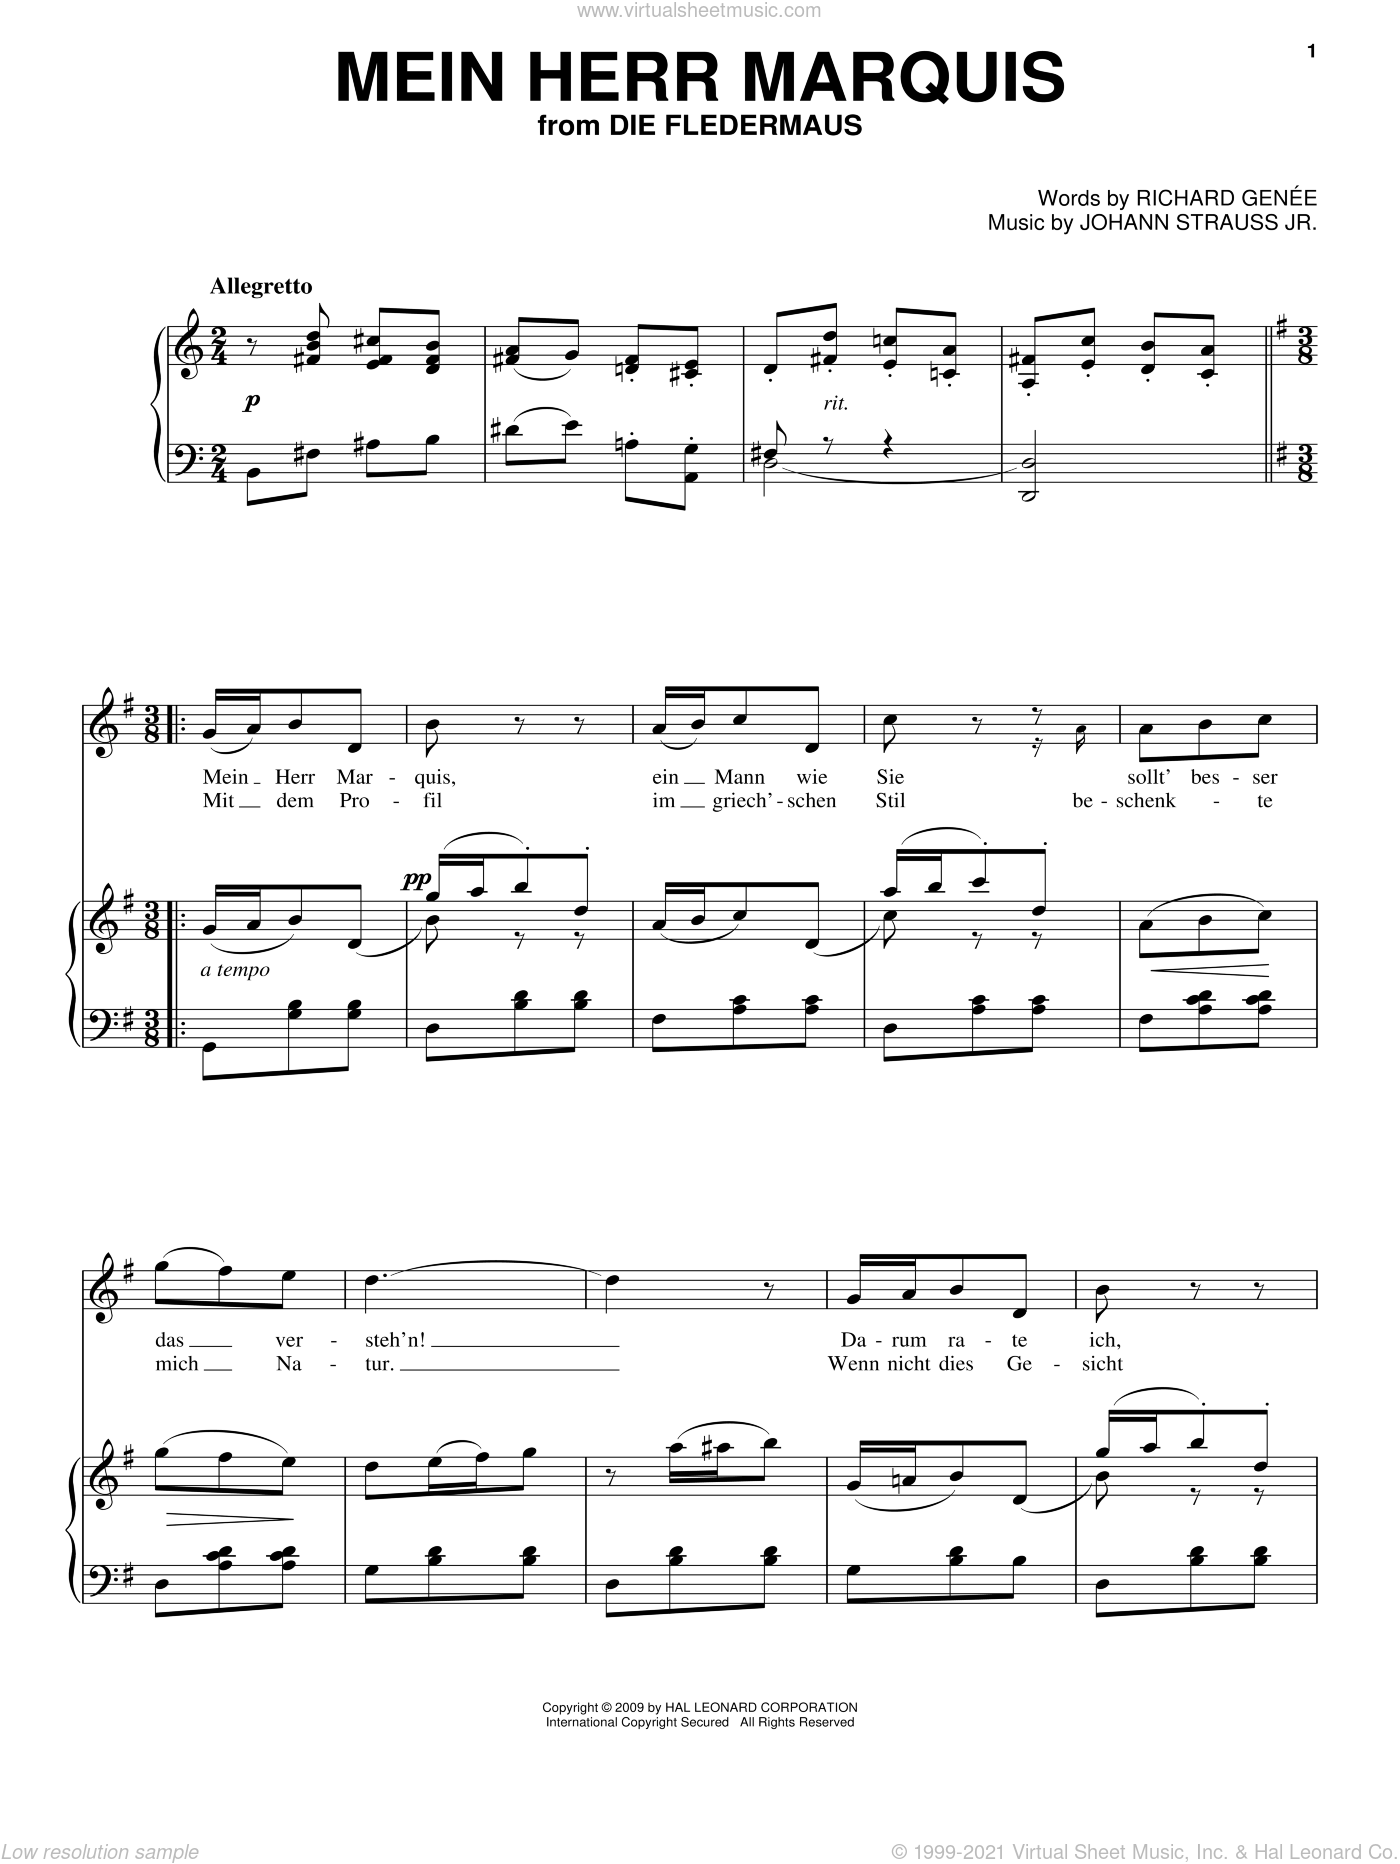 Mein Herr Marquis sheet music for voice, piano or guitar by Johann Strauss, Jr.